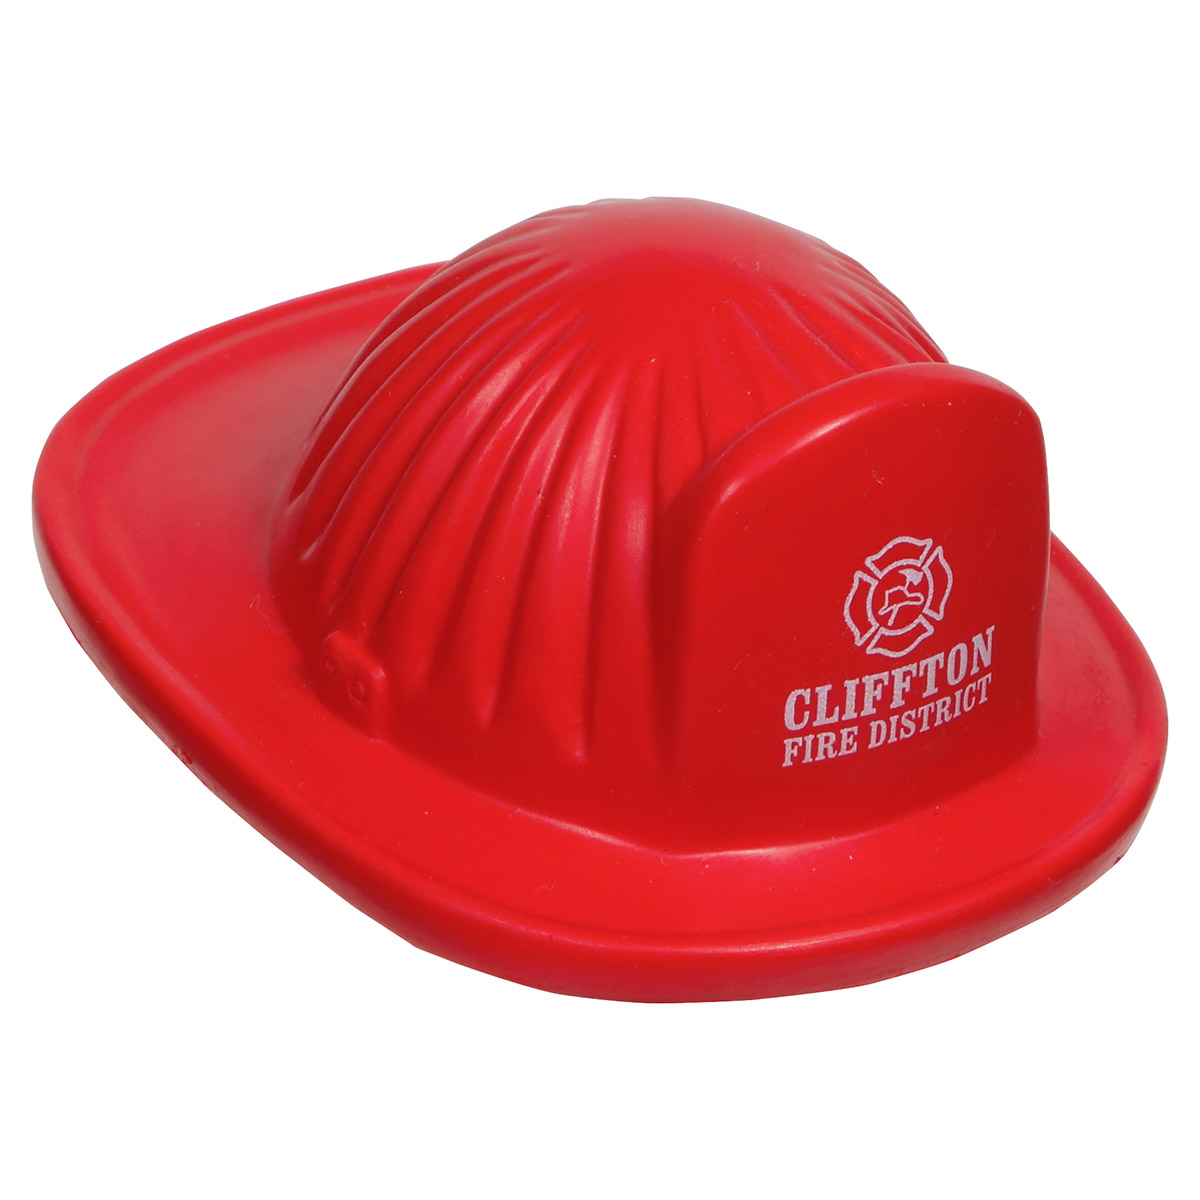 Fire Helmet Stress Reliever, LCC-FH16, 1 Colour Imprint